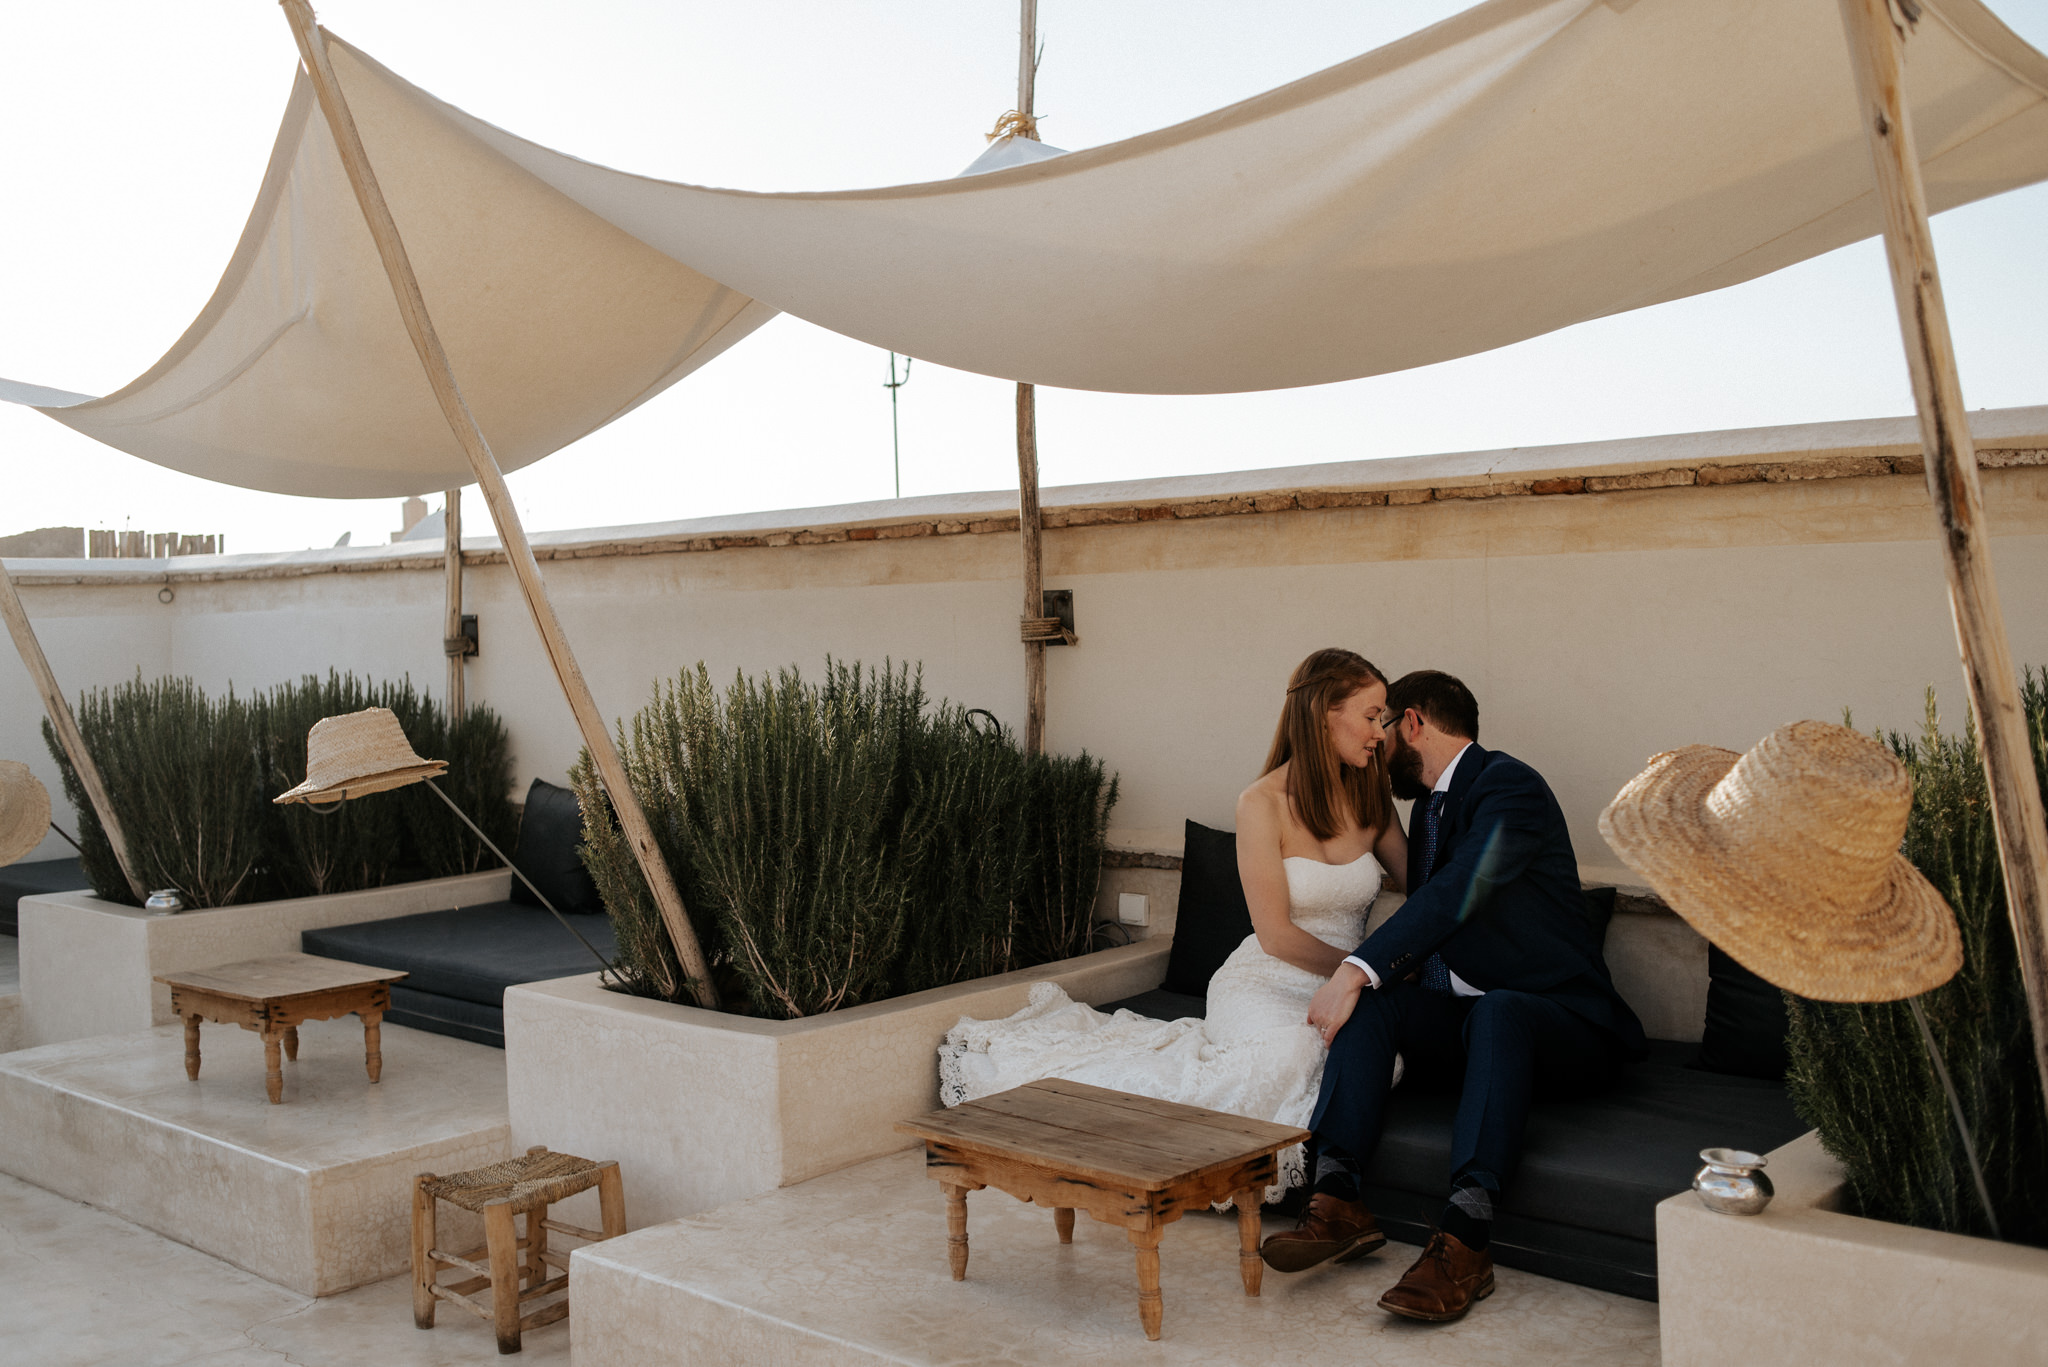 Rooftop sunset wedding portraits at Riad 42 in Marrakech